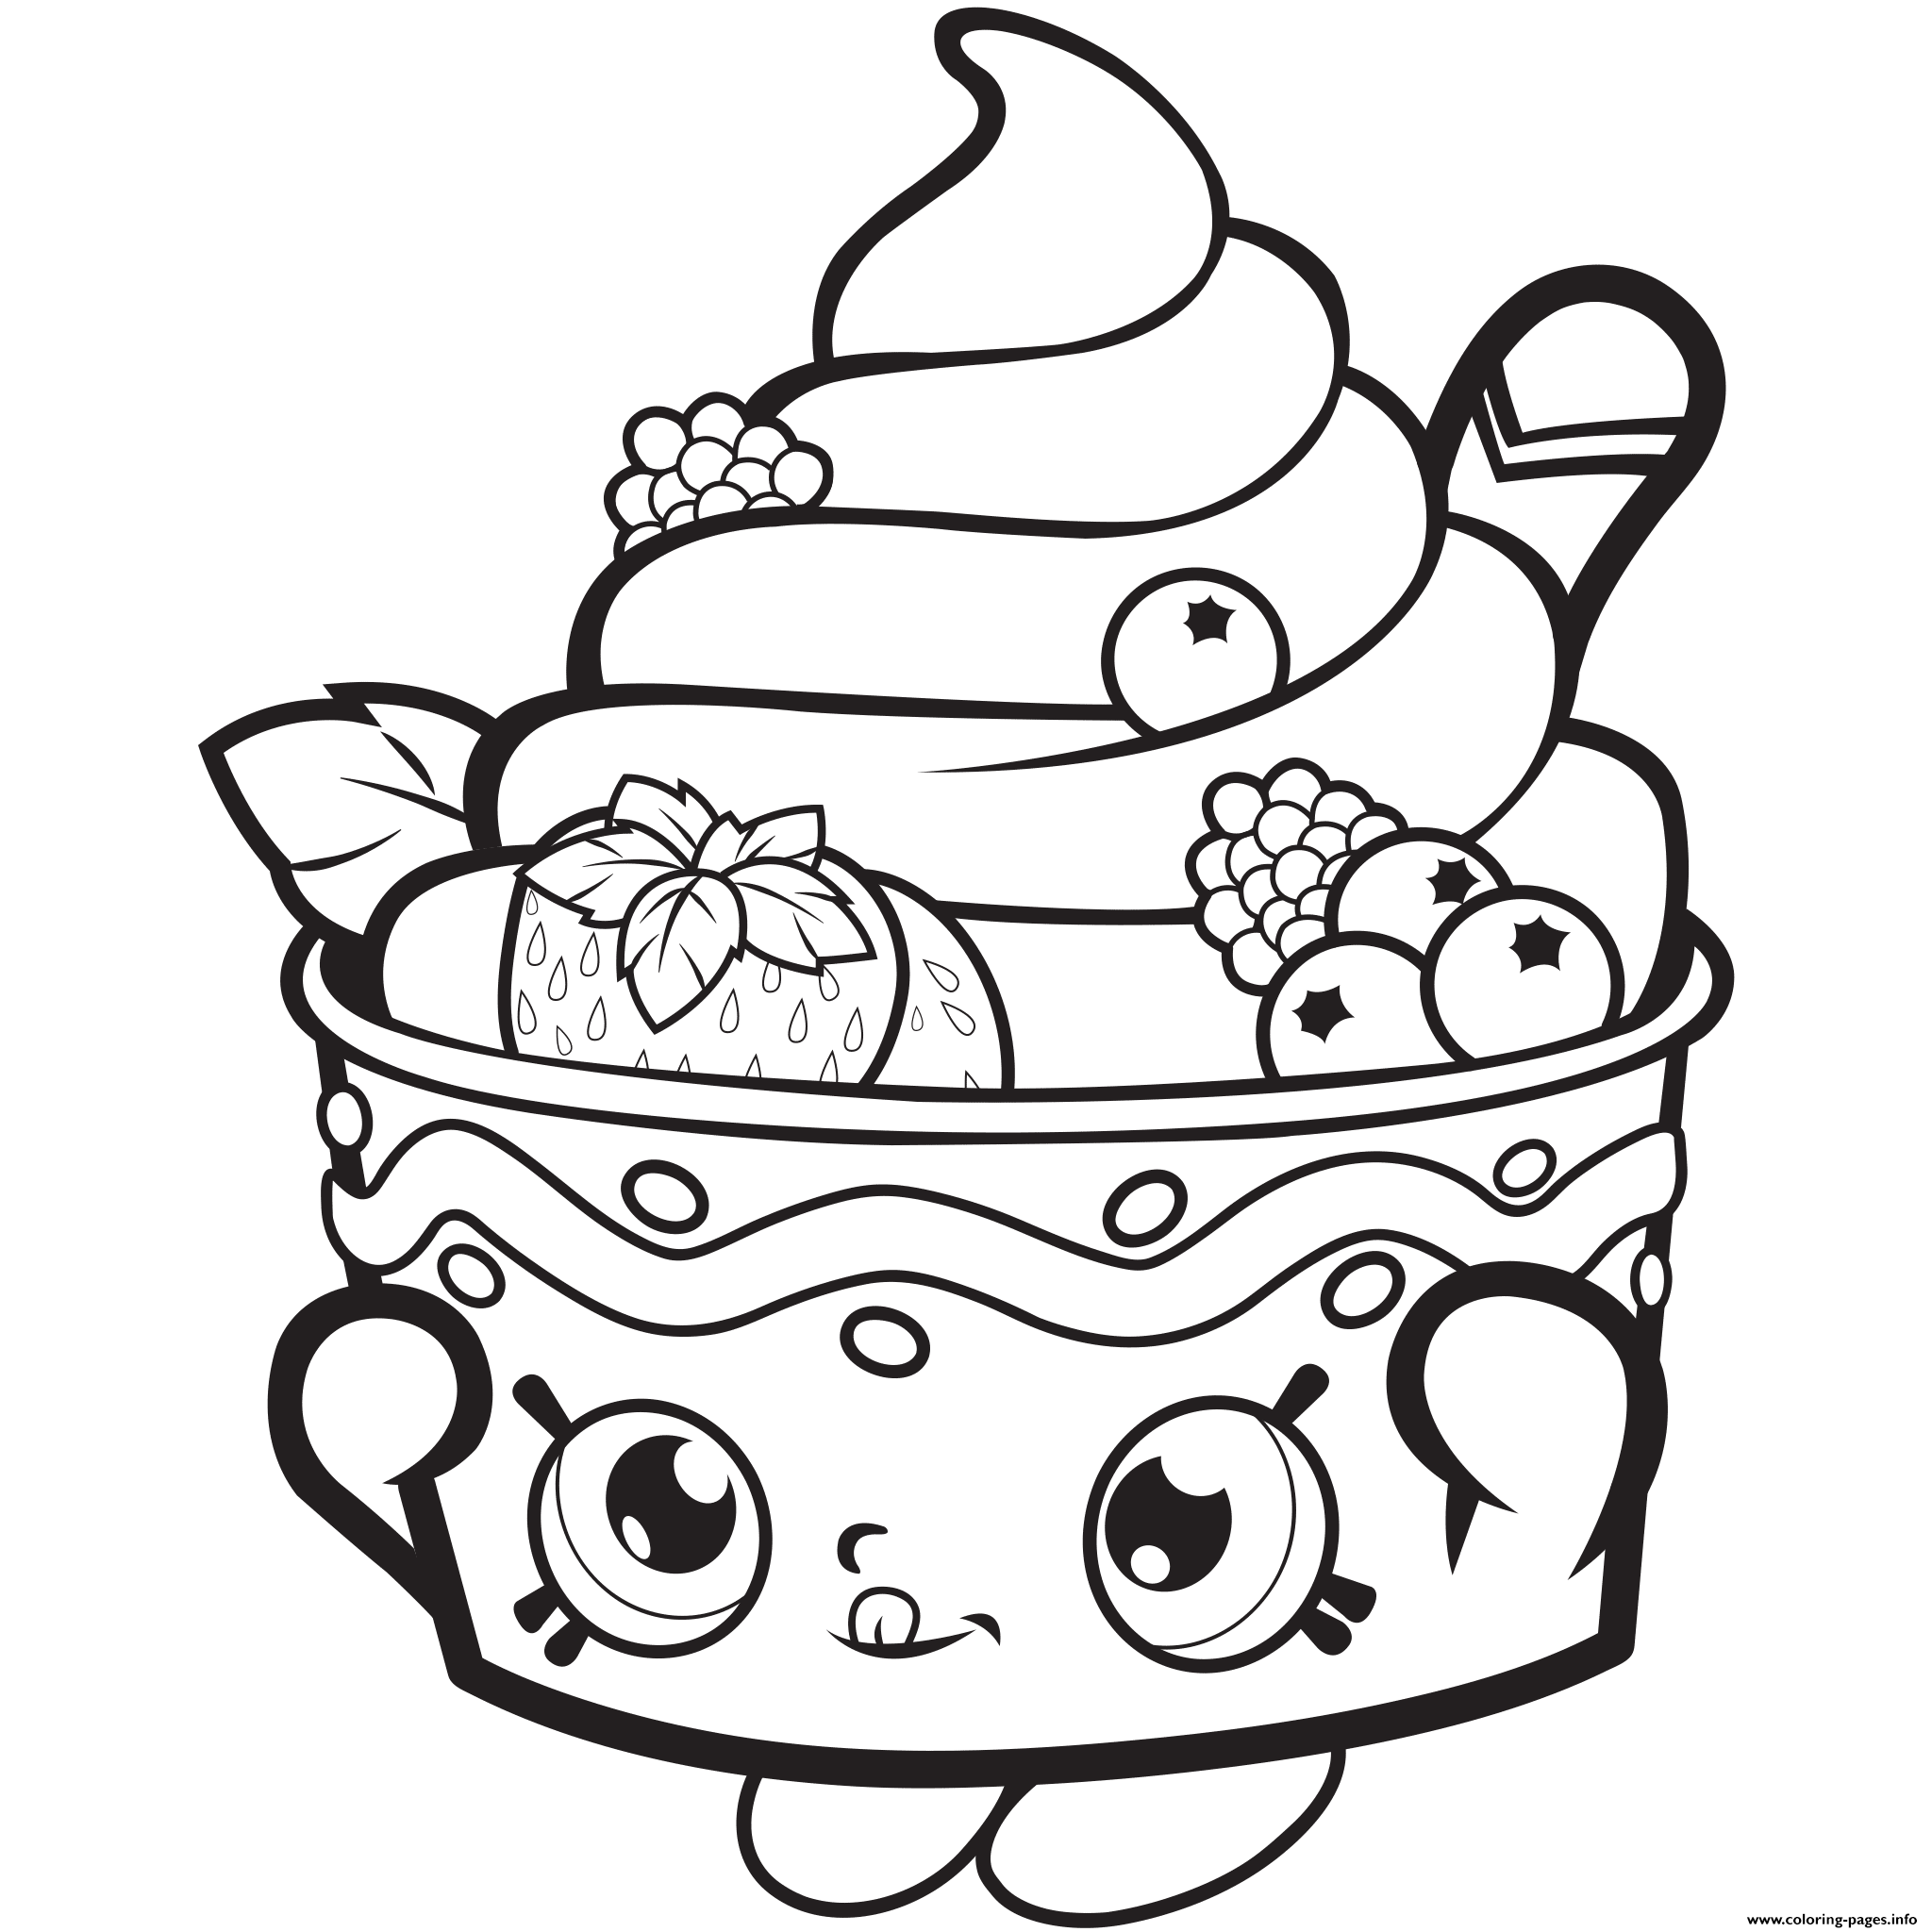 Frozen printable coloring book - 446 Prints